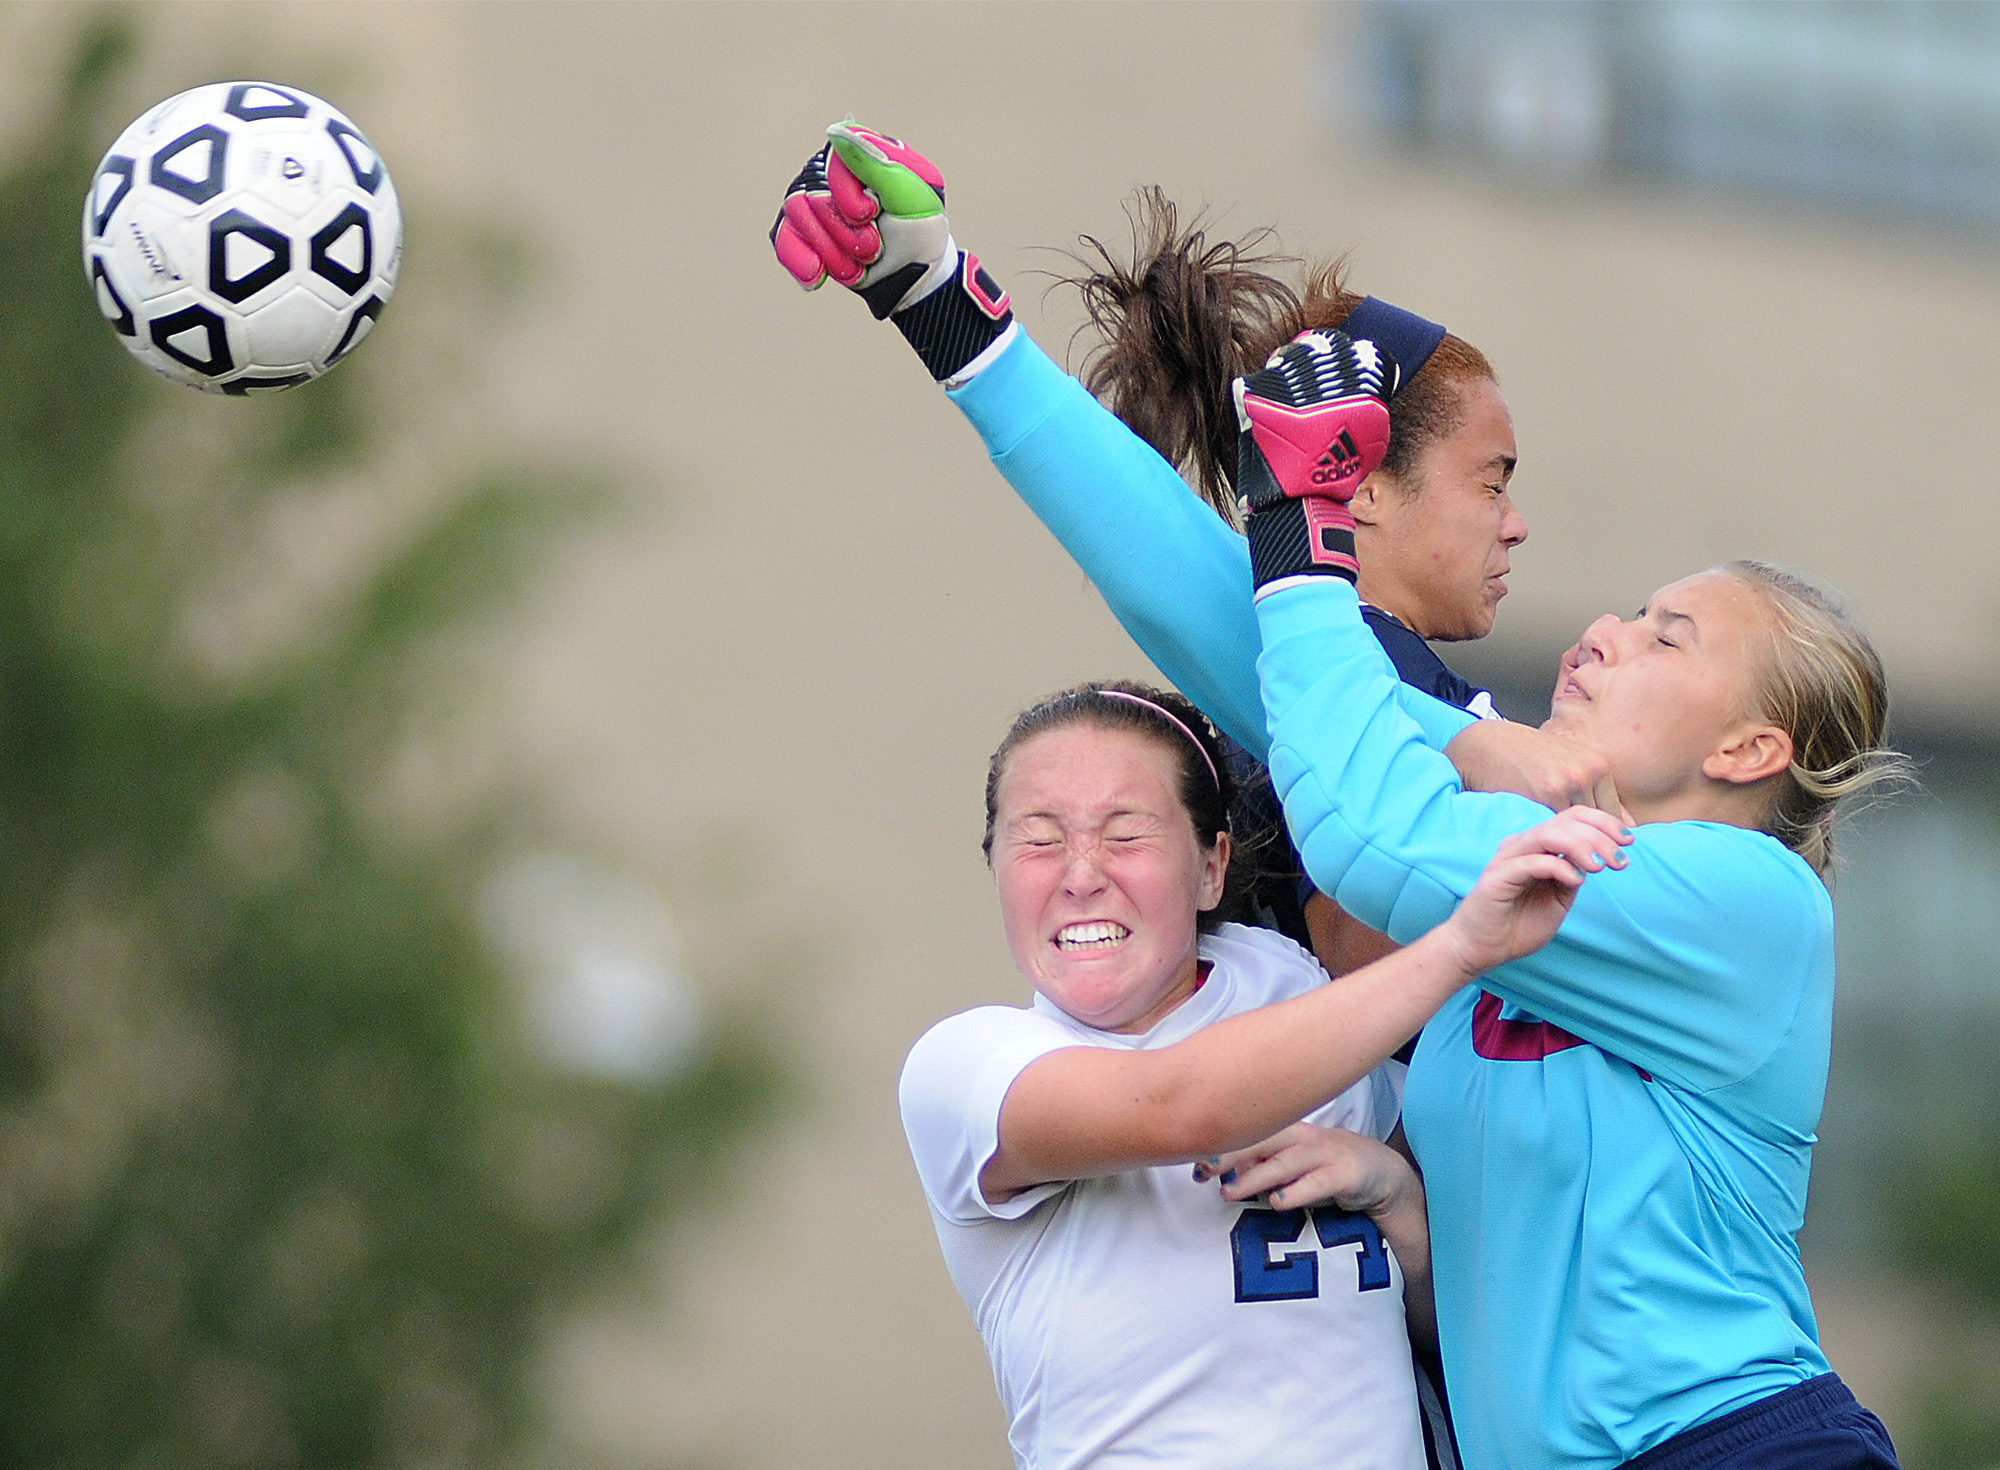 Cardinal O'Hara goal keeper Carrie Zamonski (31) punches the ball away from teammate Alex Patrick (24) and Conwell-Egan's Bailey Brown (24) during their game at Conwell-Egan Catholic High School in Bristol Township on Thursday, Sept. 11, 2014.